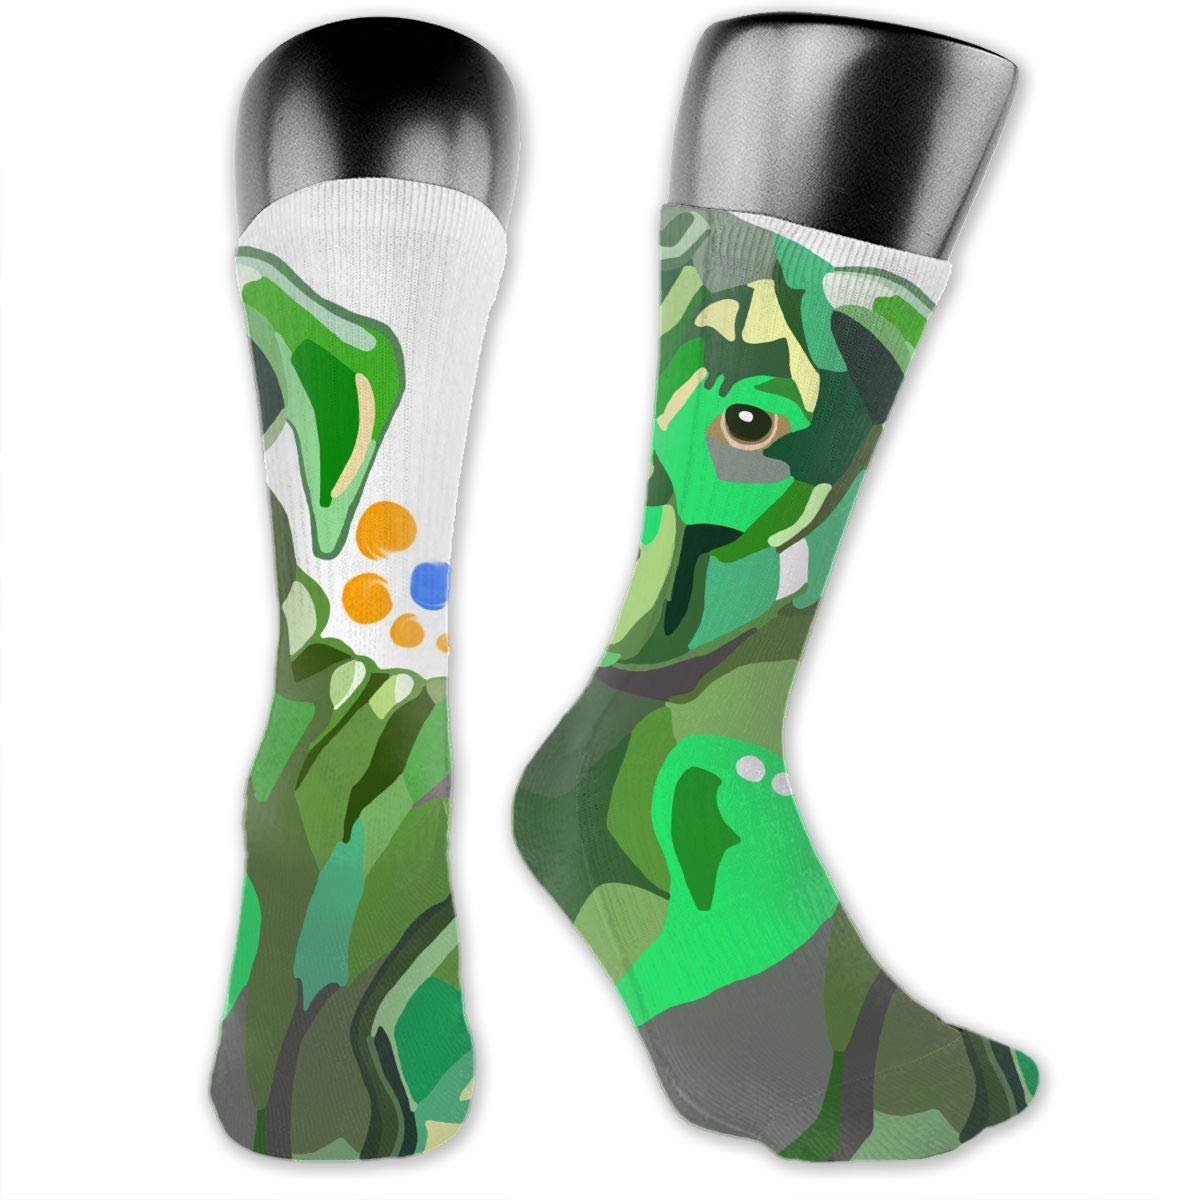 OLGCZM Green Sad Dog Men Womens Thin High Ankle Casual Socks Fit Outdoor Hiking Trail